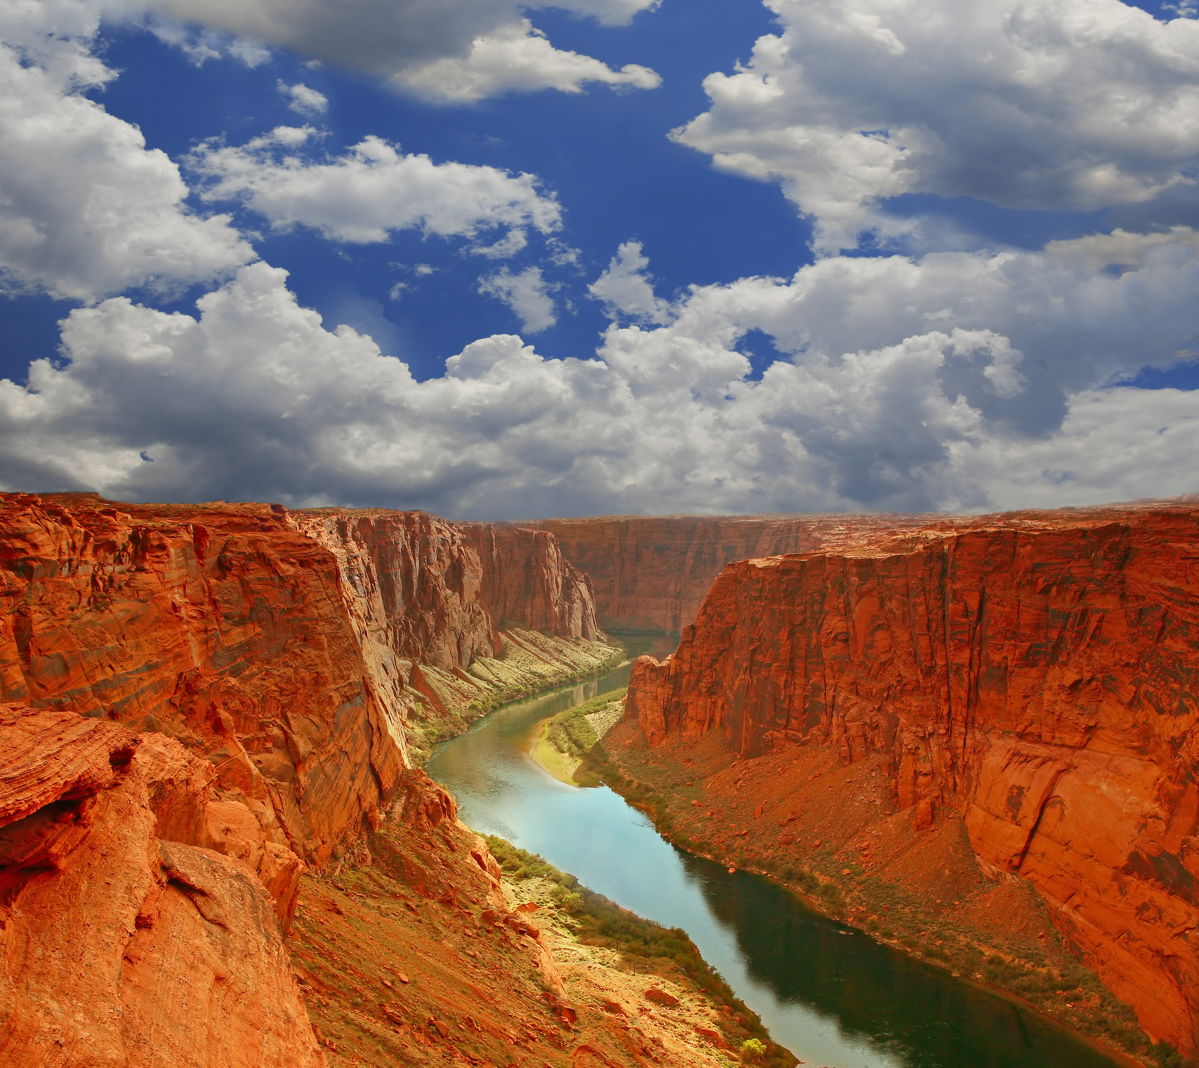 orange walls in the Grand Canyon on a bright blue day, white clouds in the sky